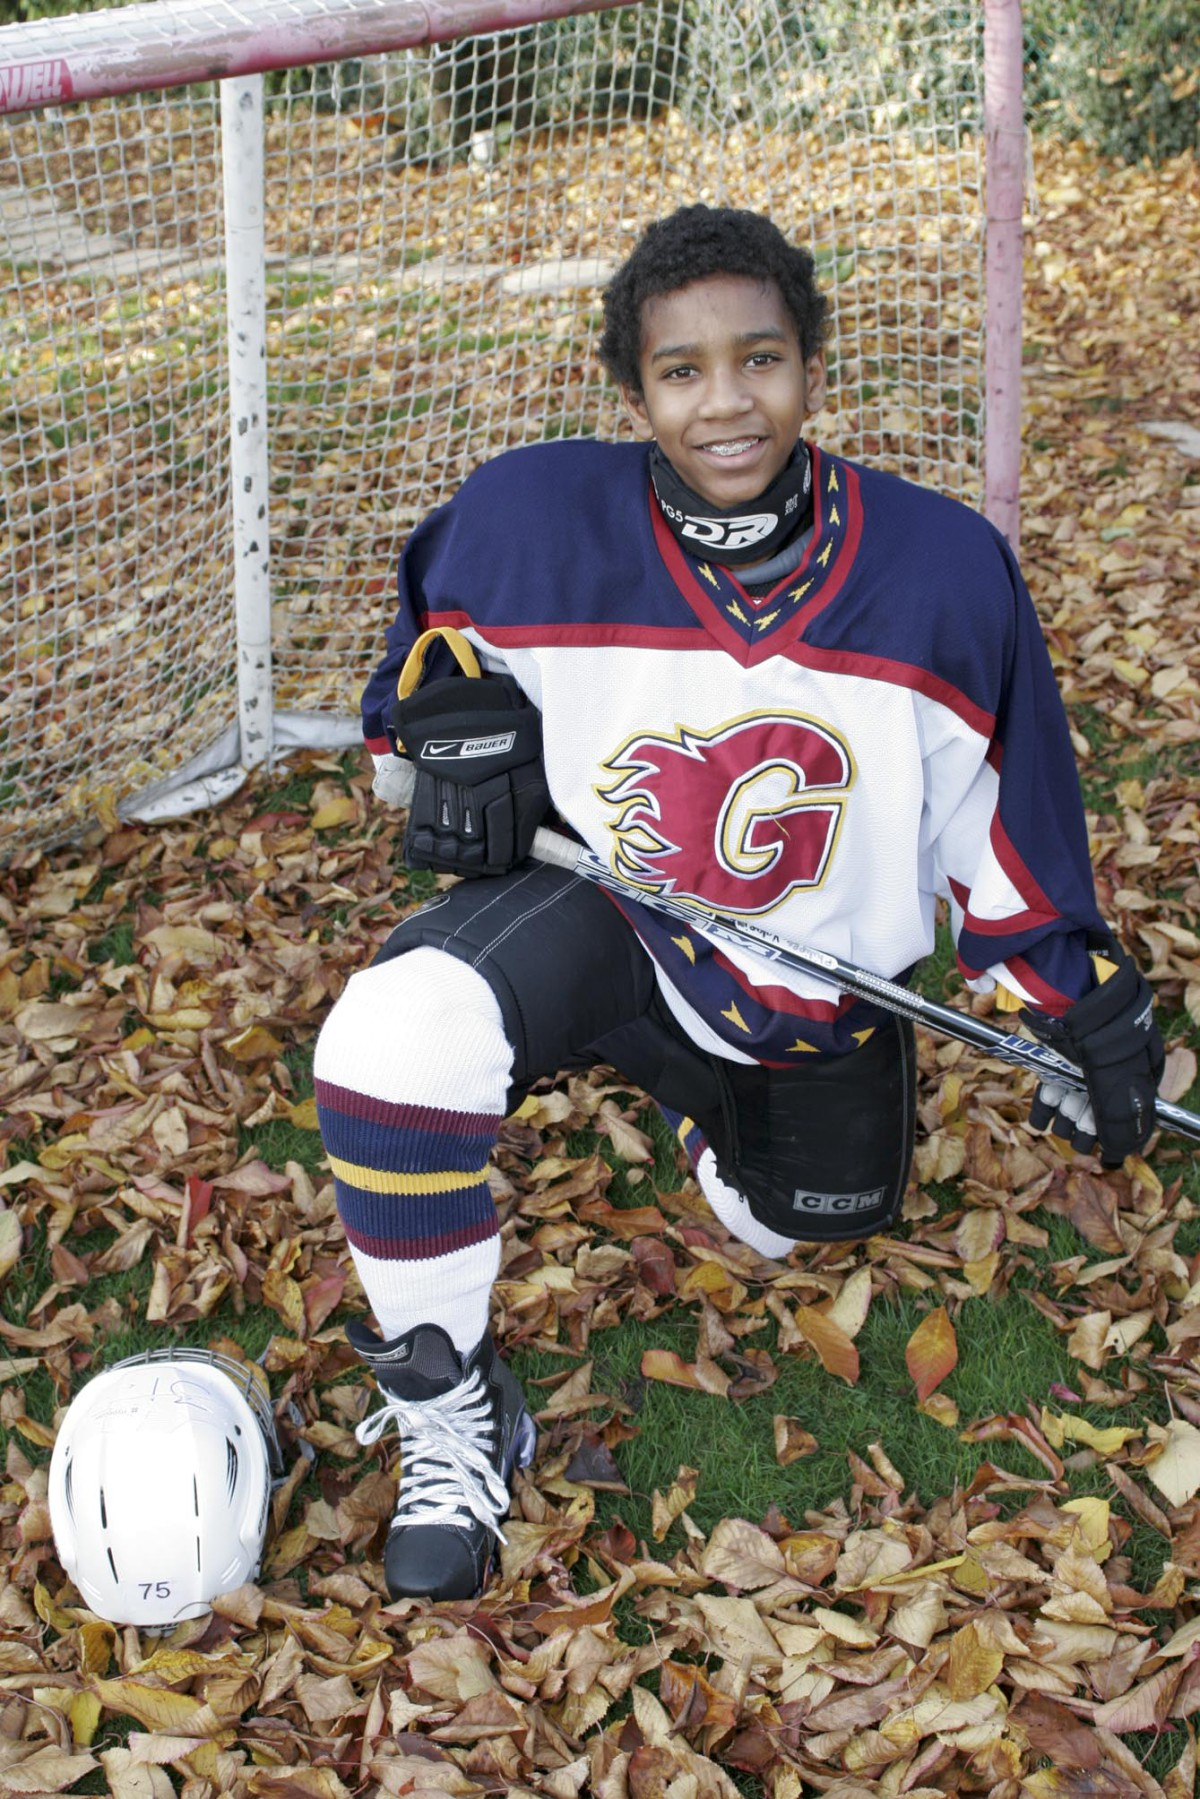 Talented ice hockey player: Philippe Valapinee aged 12